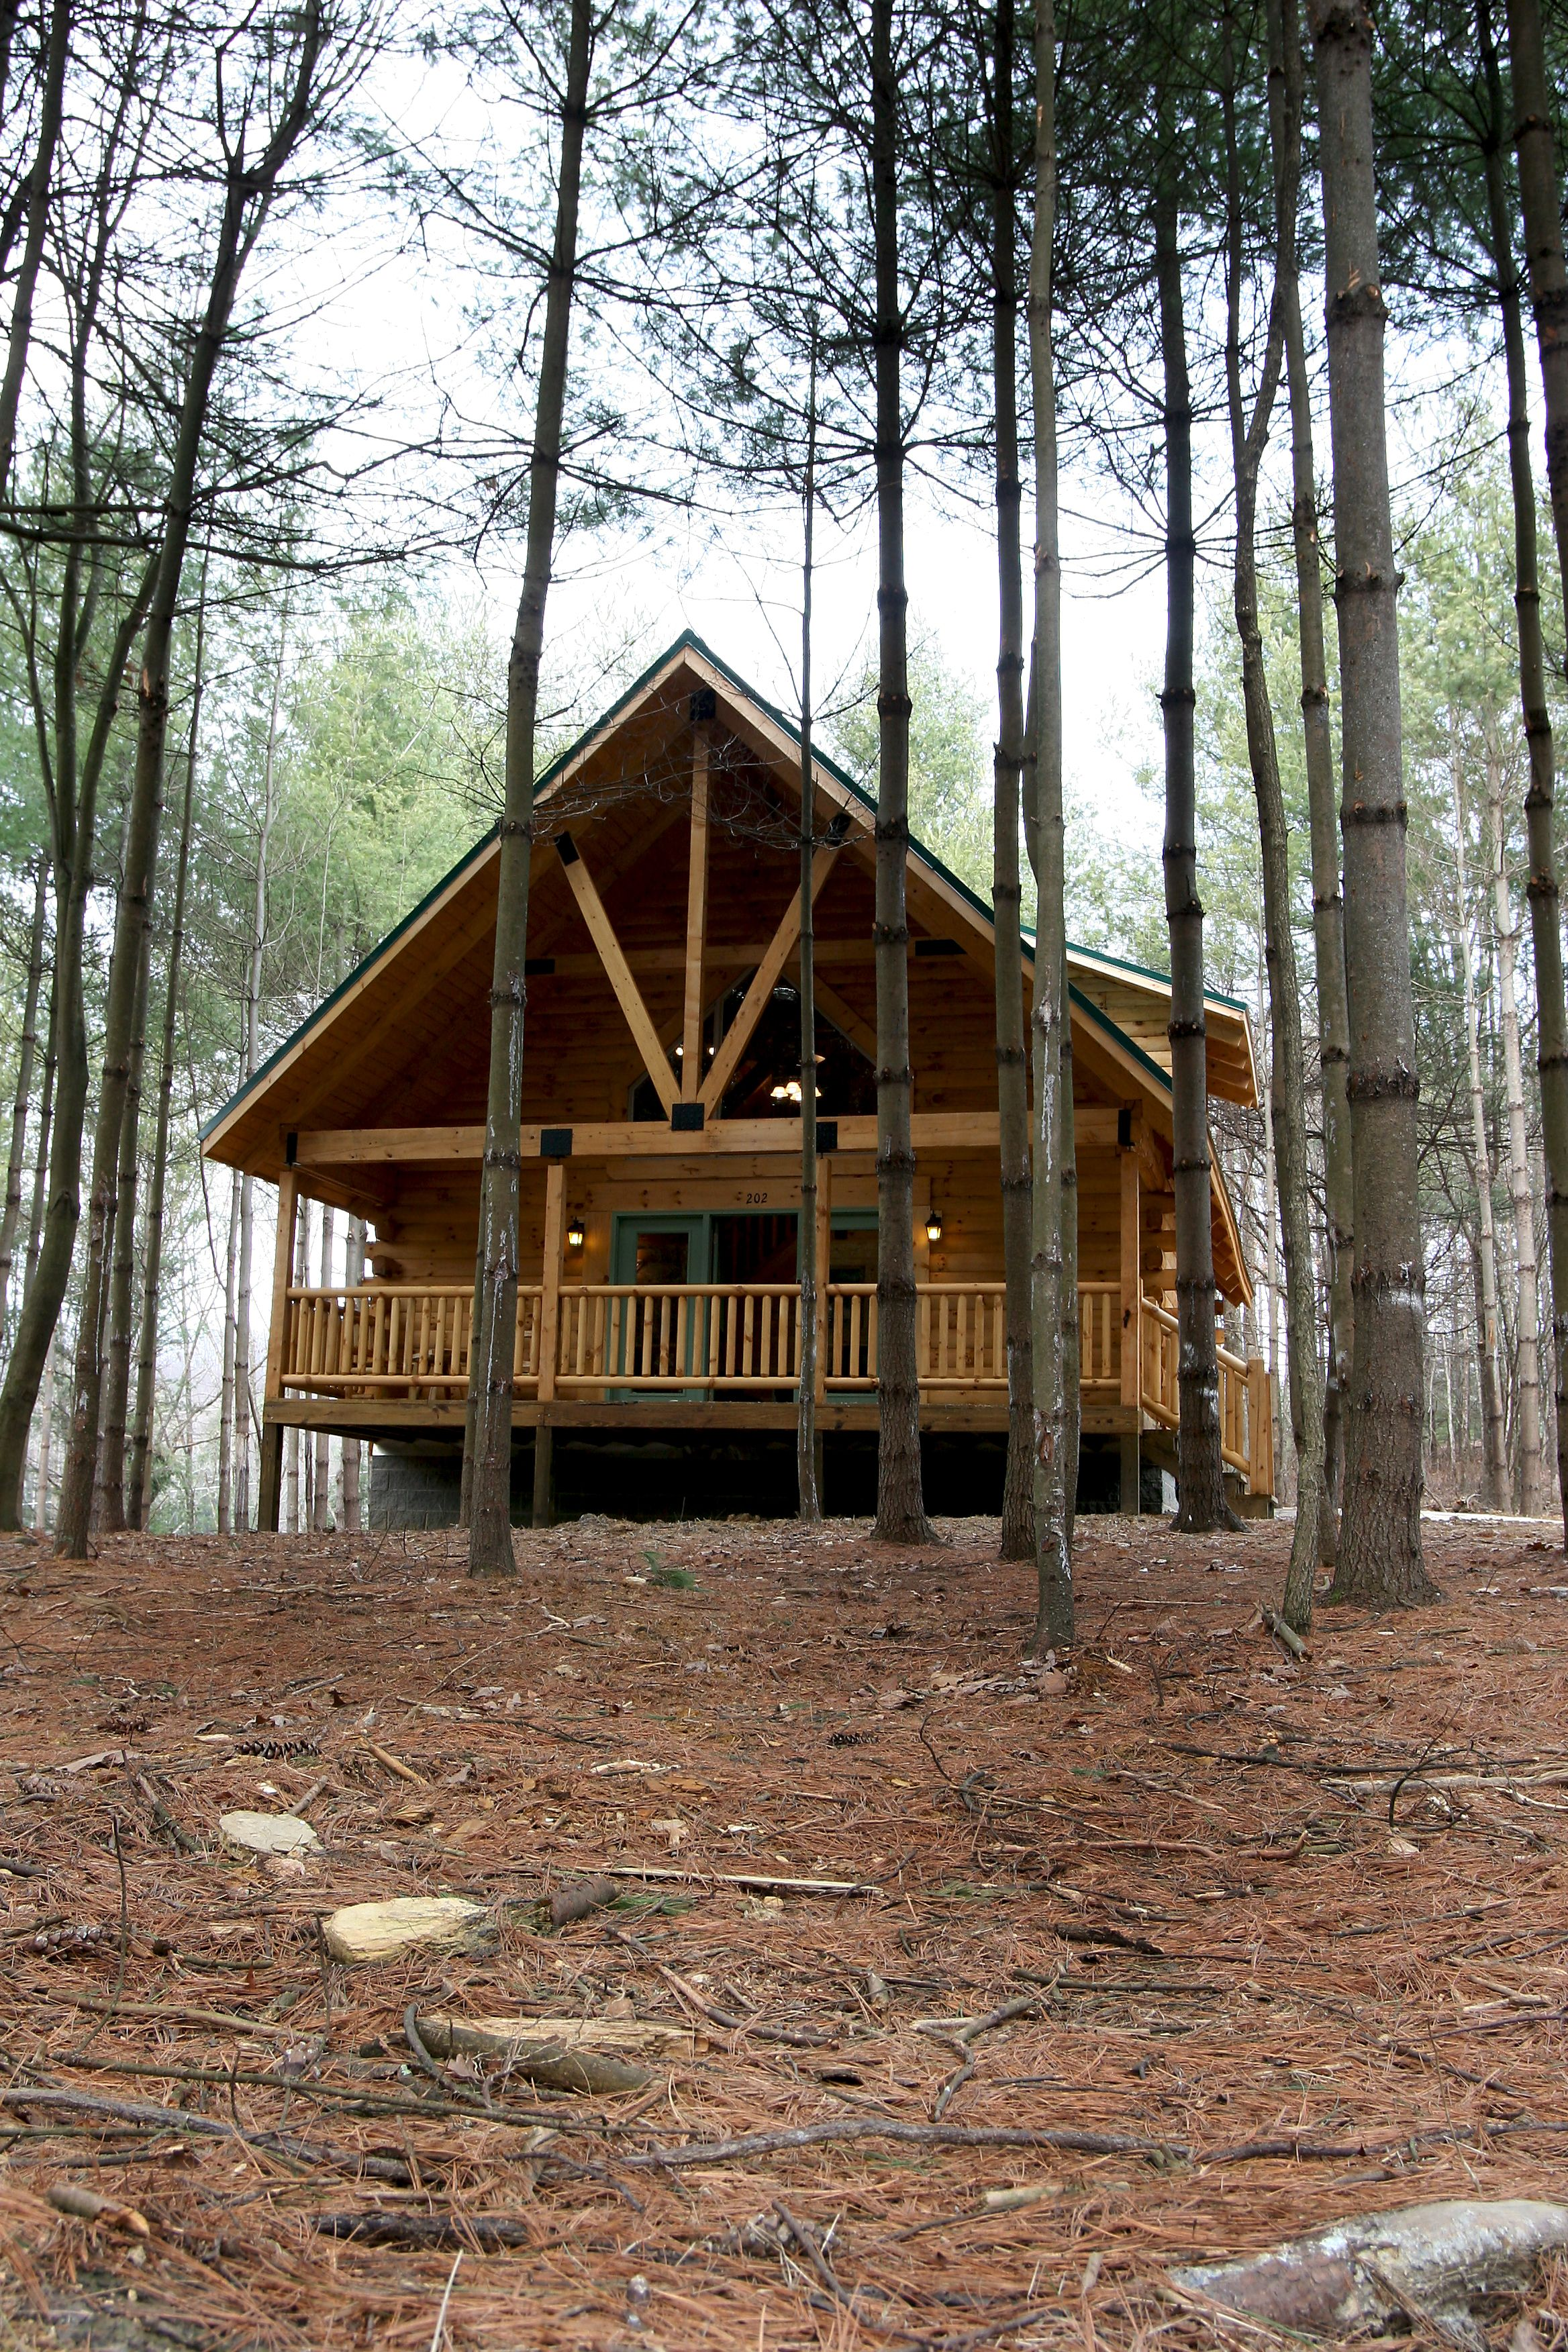 rentals wv west cabin to and virginia cabins visitwvcabinrentals vacation stay places